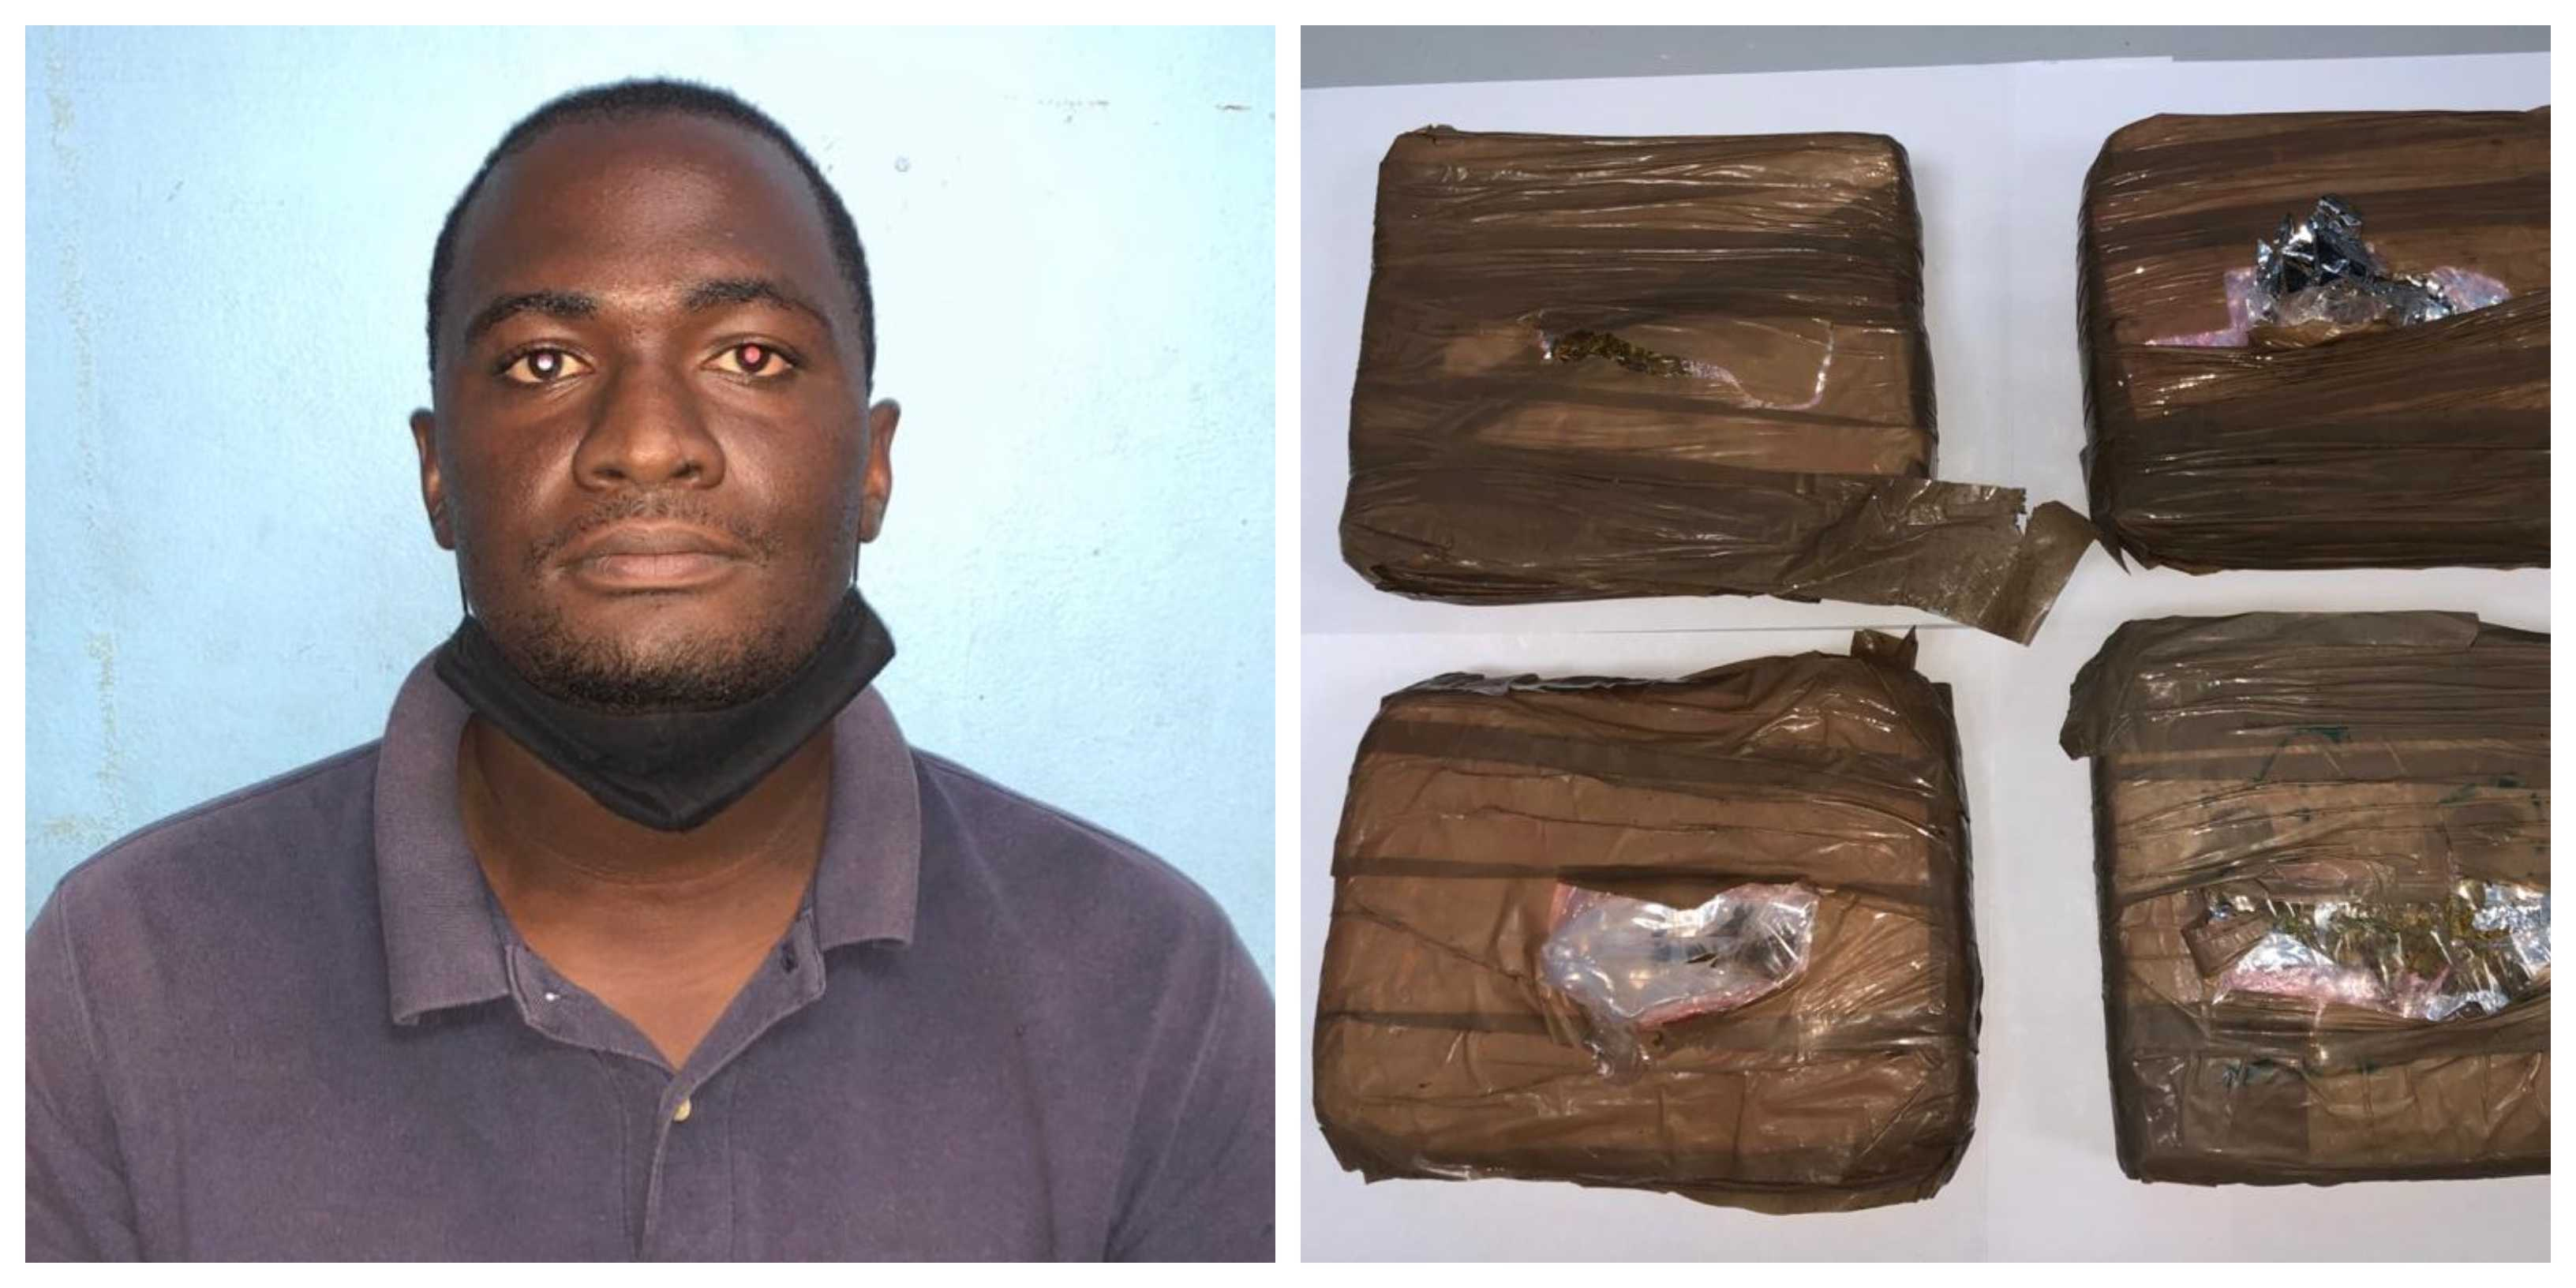 cnc3.co.tt - CNC3 Editor - Laventille man charged with marijuana possession